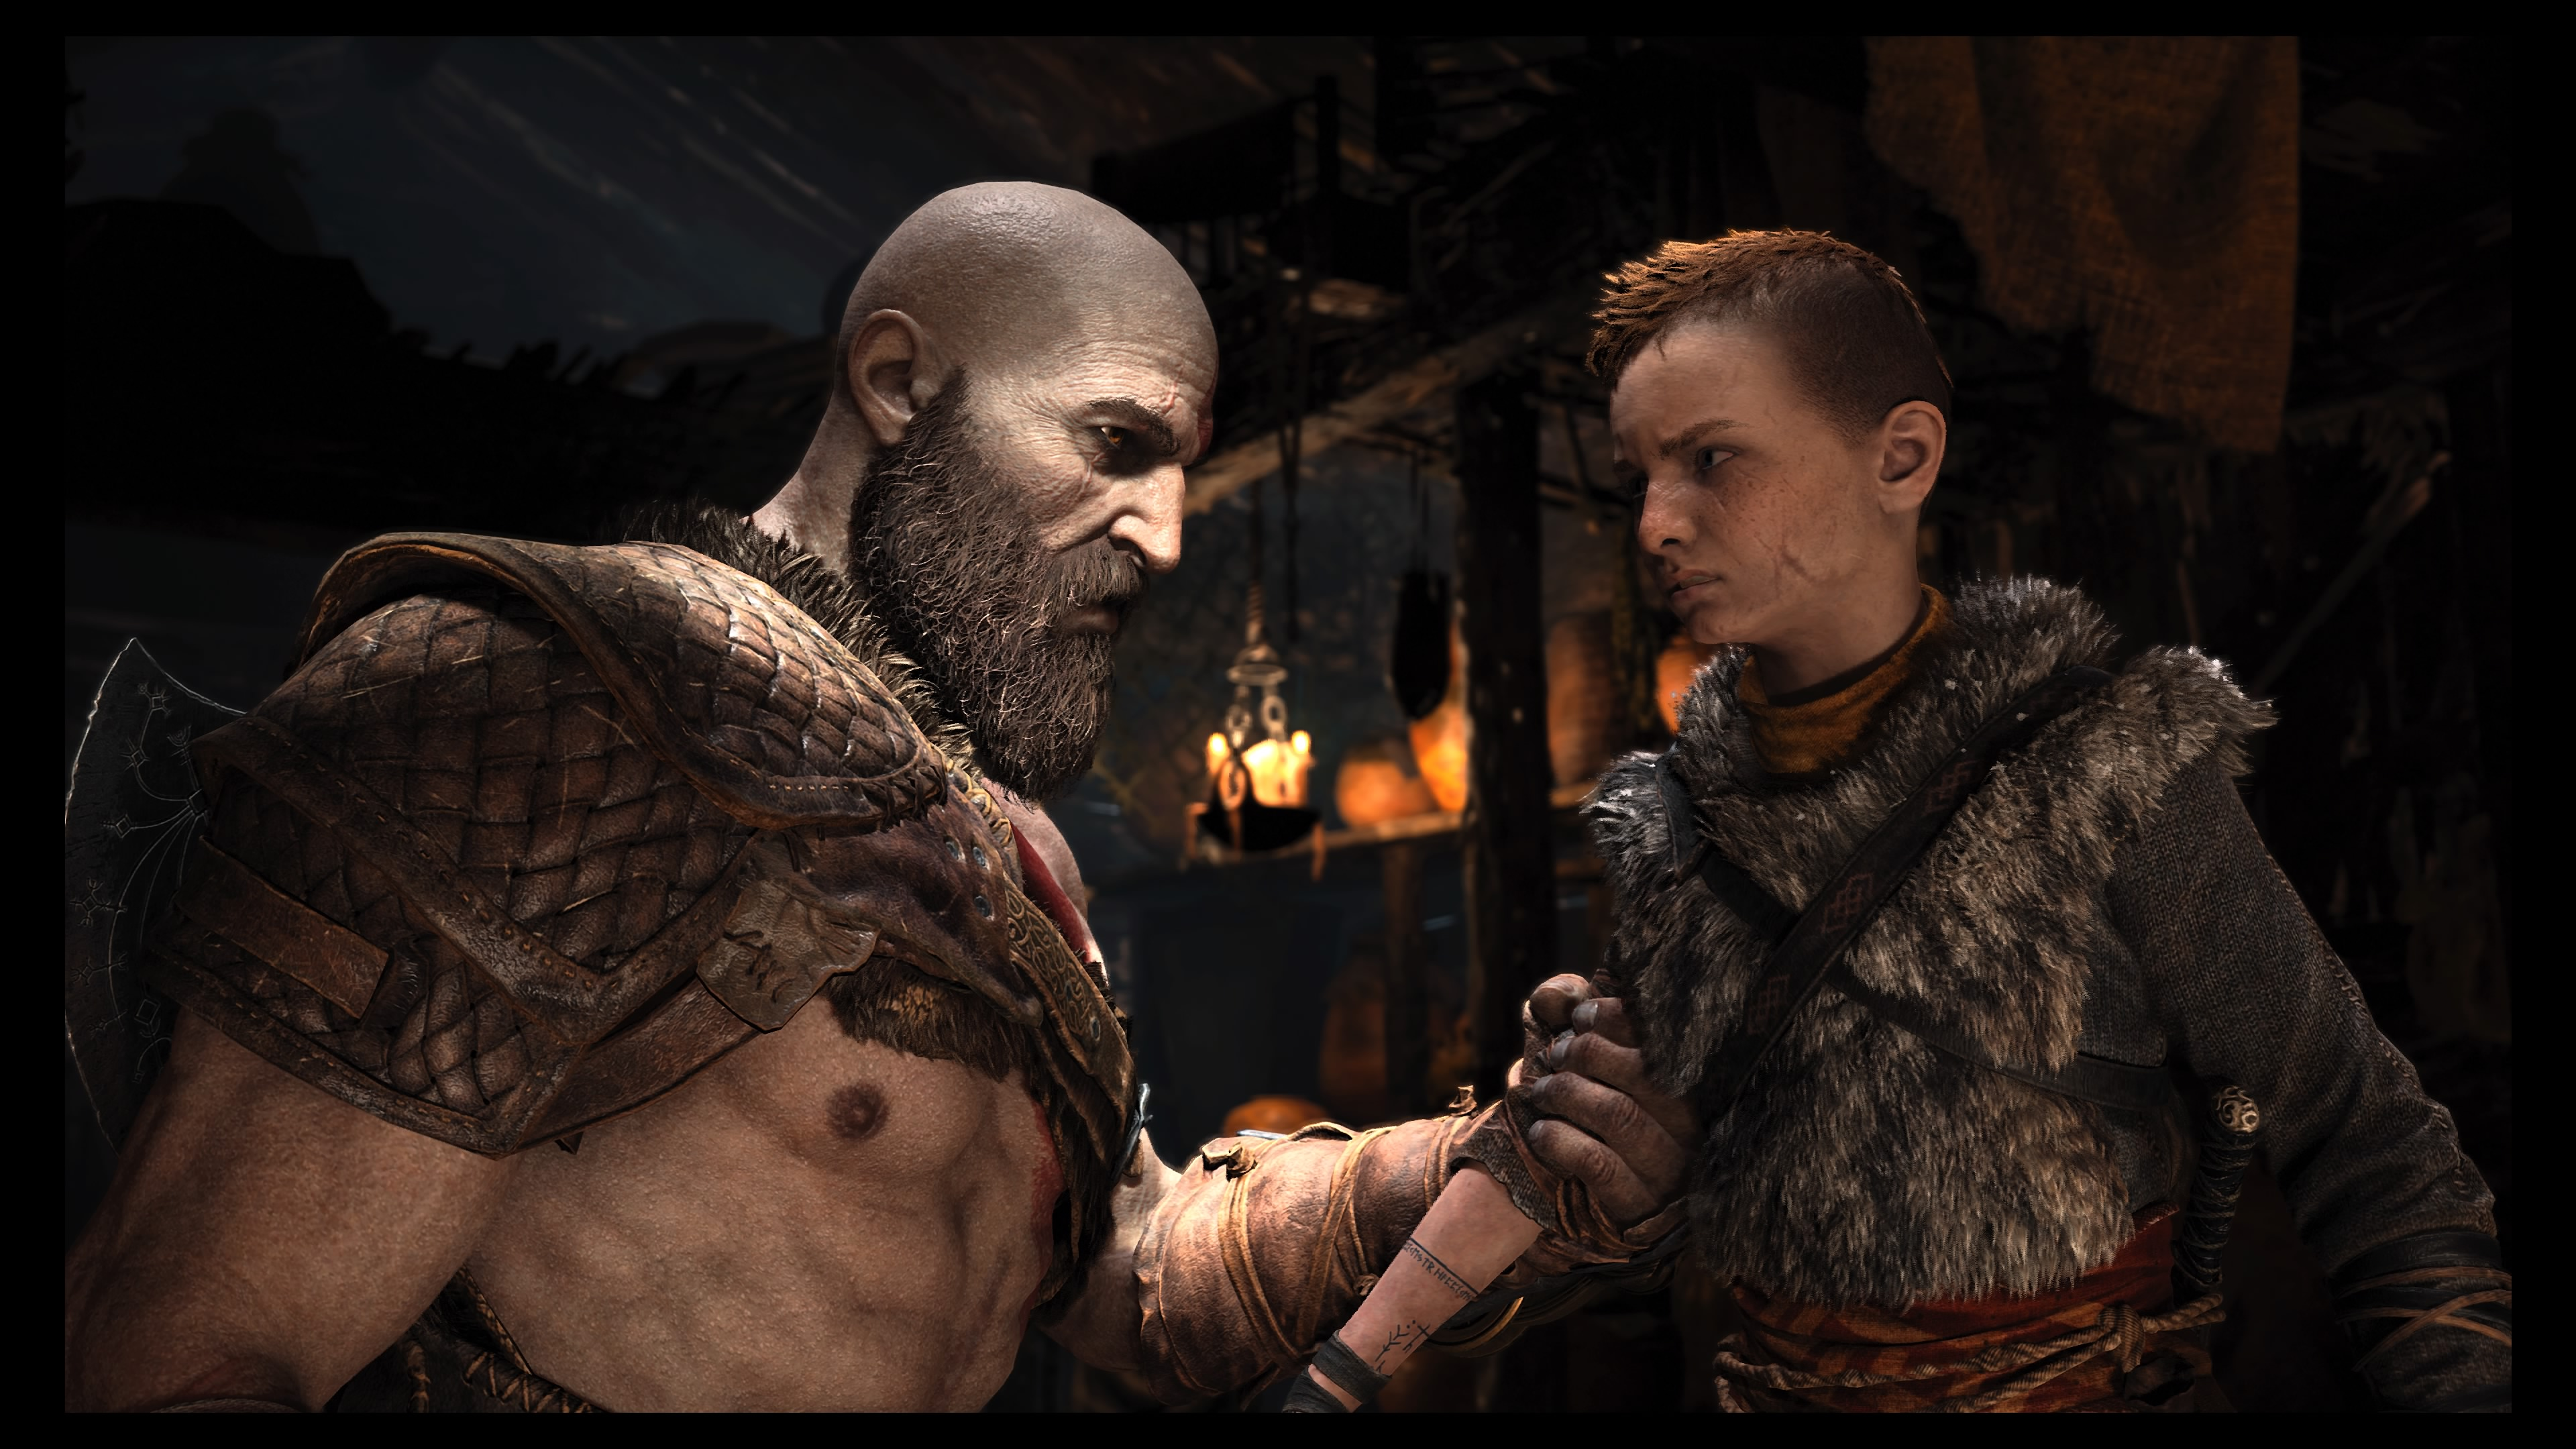 God of War's director explains Kratos's journey from angry Greek to fatherly Nord